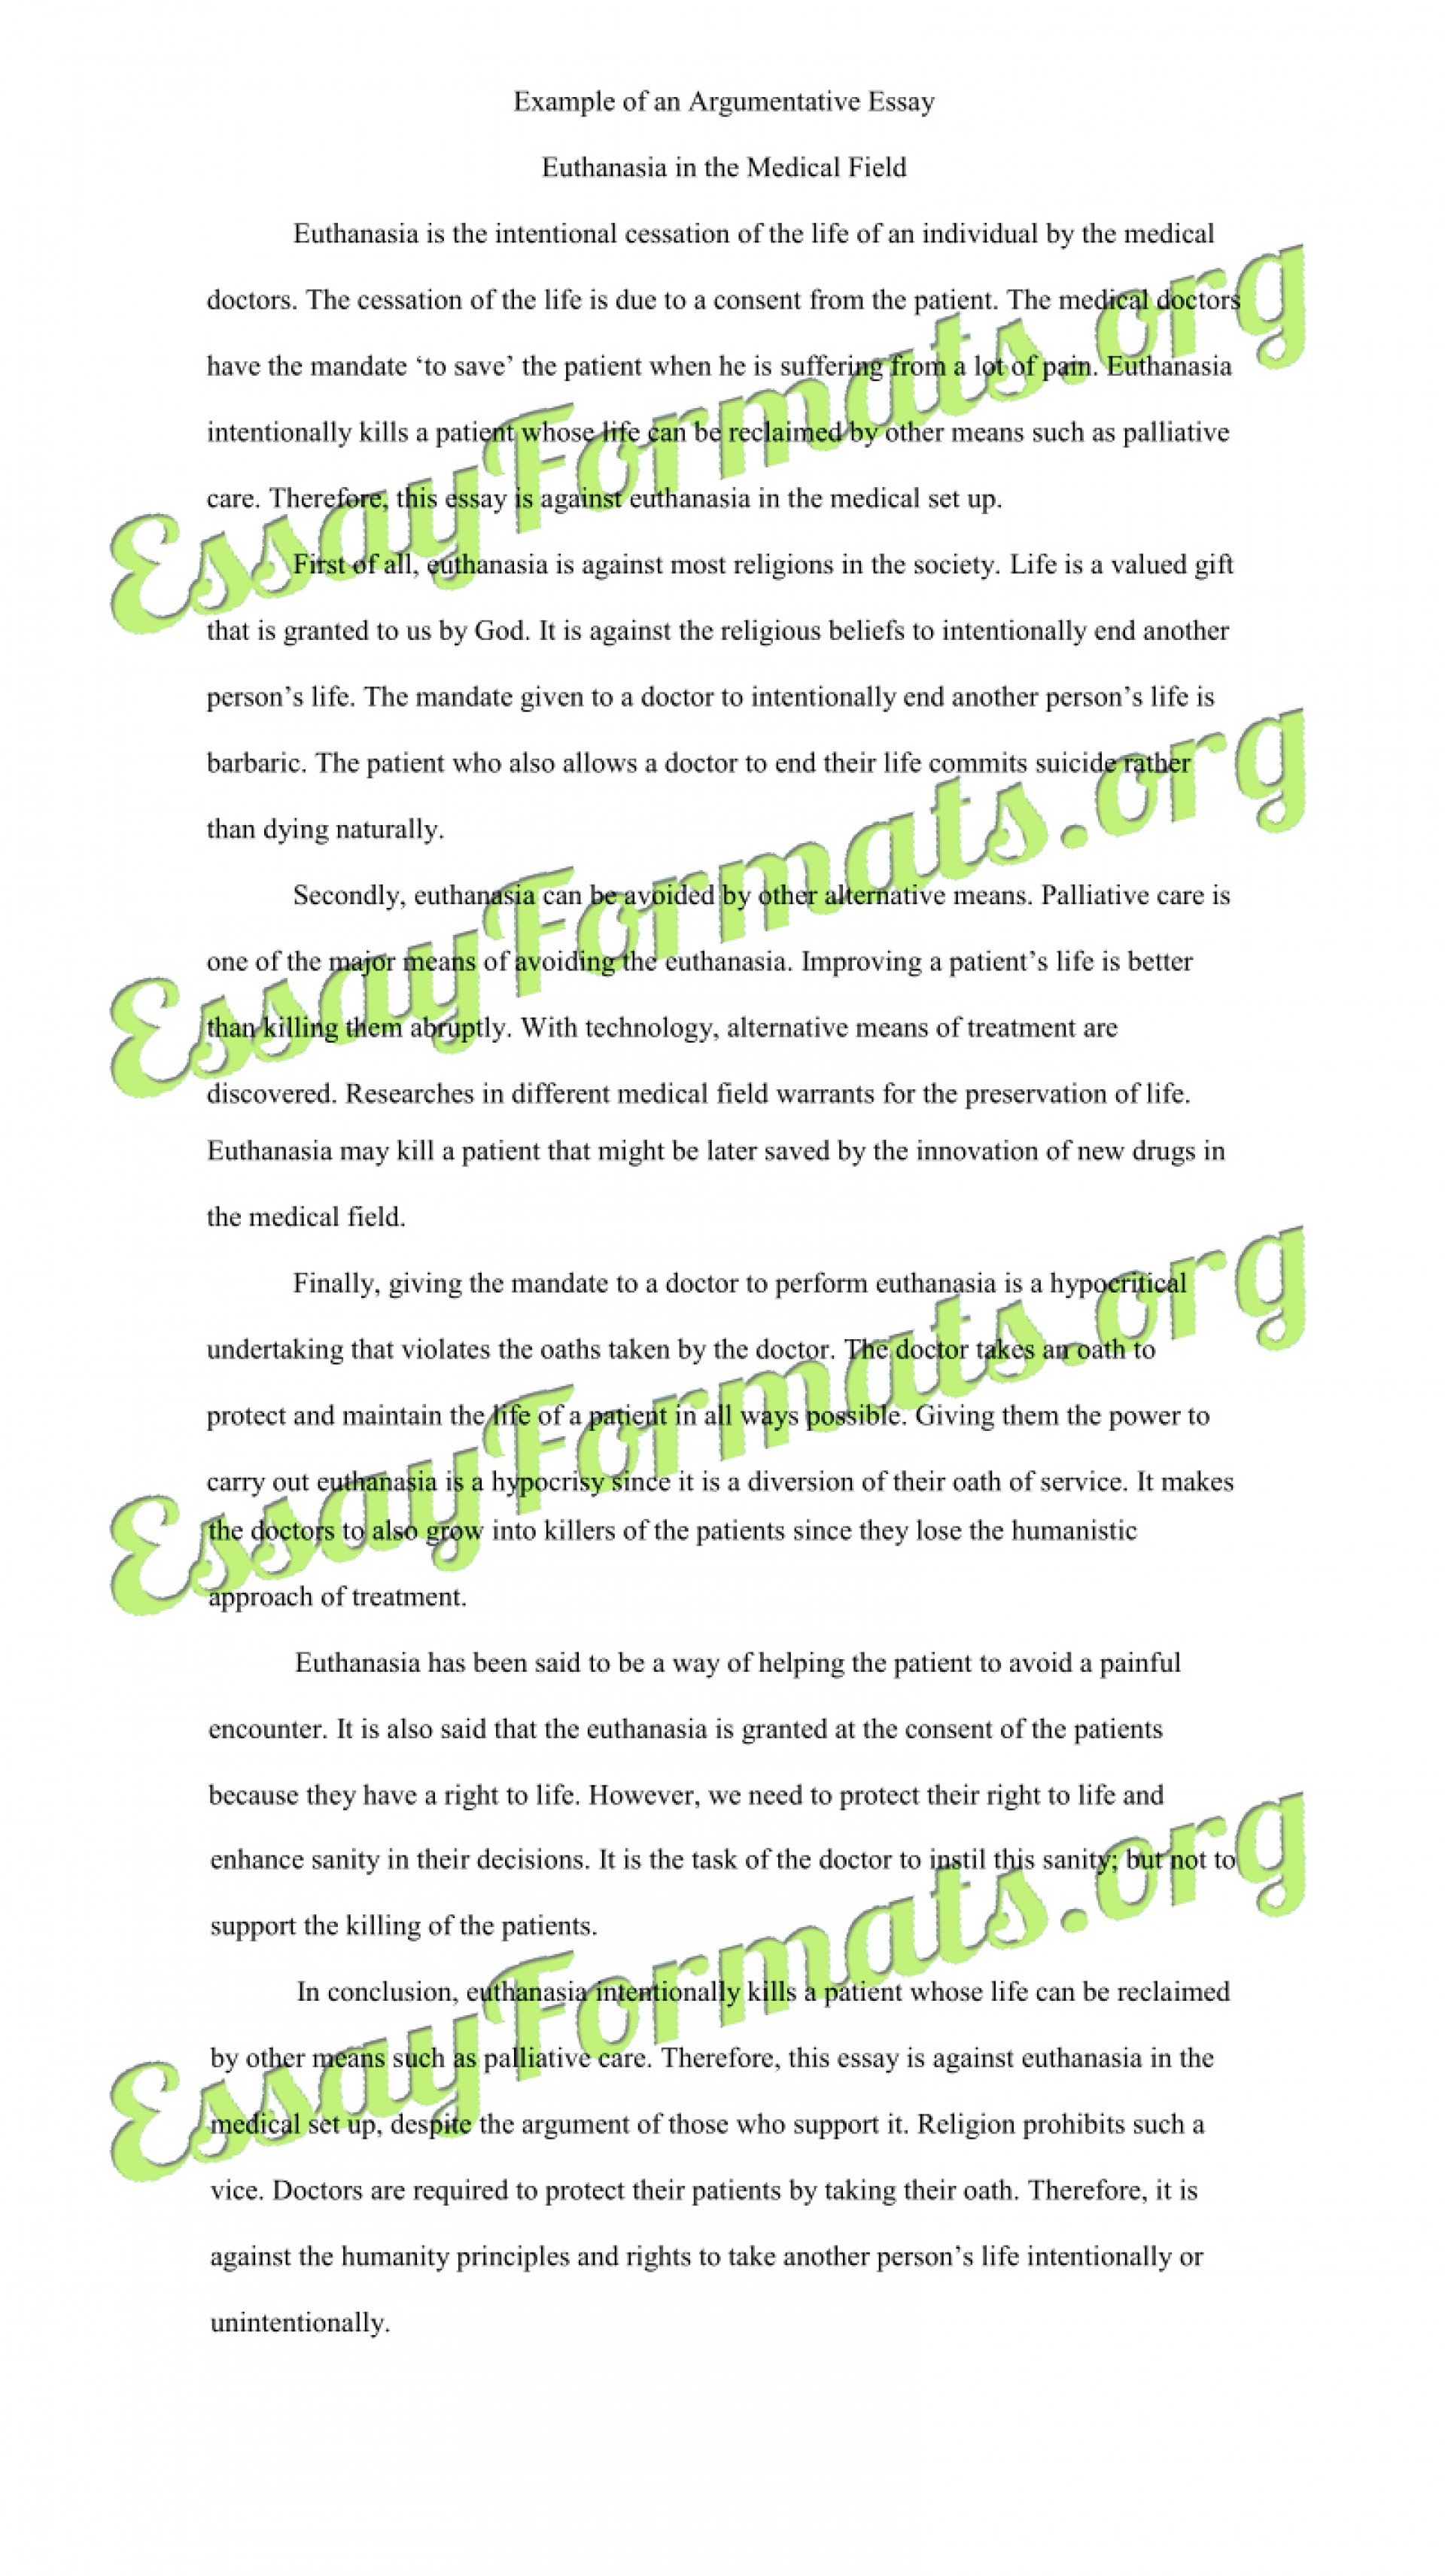 005 Essay Example Euthanasia Argumentative Counter Argument Persuasive Examples L Stirring Pro Thesis Introduction 1920